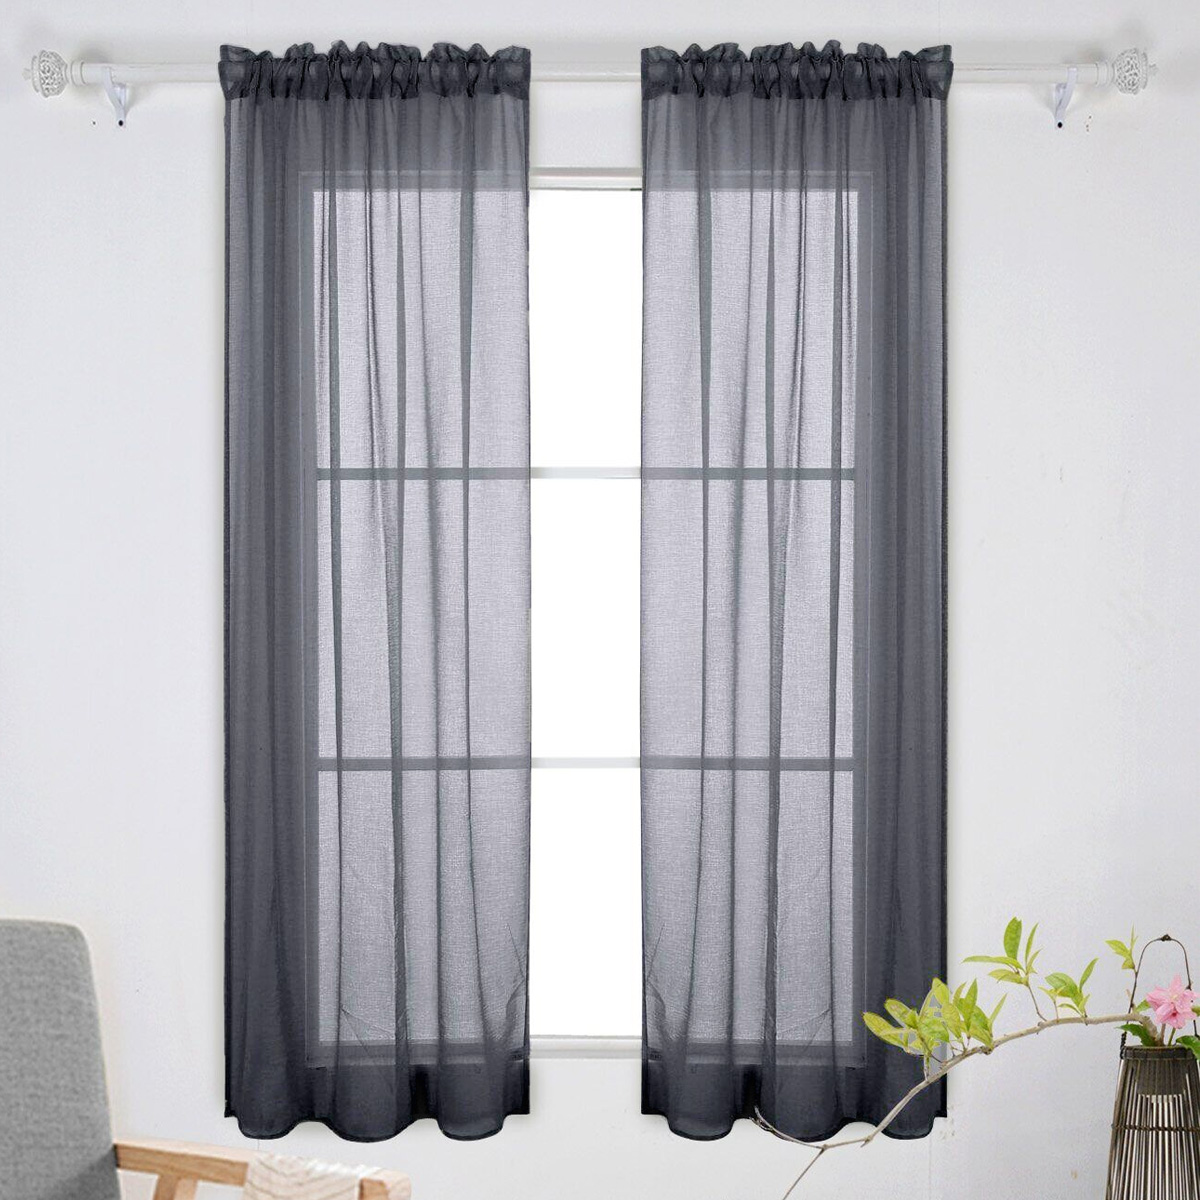 Black Voile Curtains 2pcs Solid Color Transparent Tulle Window Sheer Window Screen Voile Curtains For Wedding Bedroom 100x200cm Black